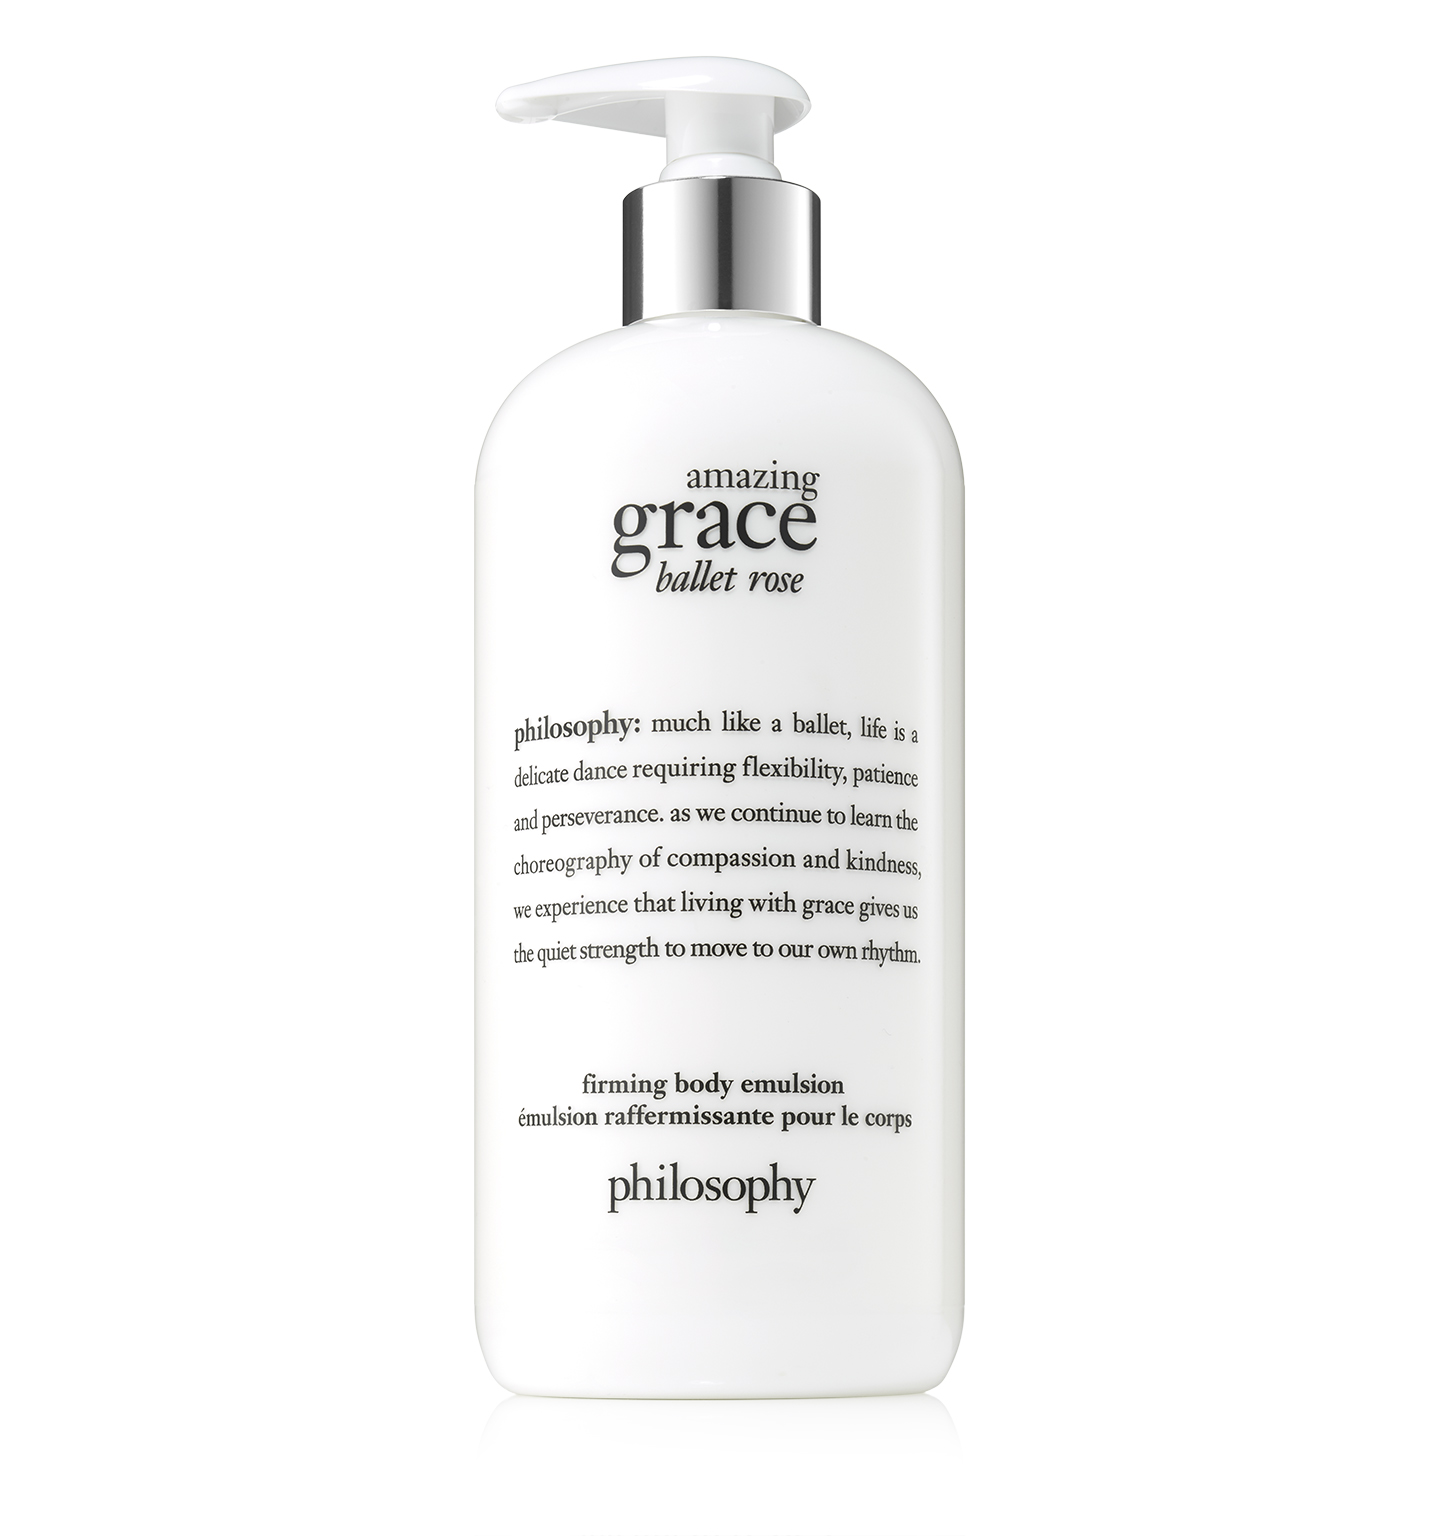 philosophy, amazing grace ballet rose body lotion